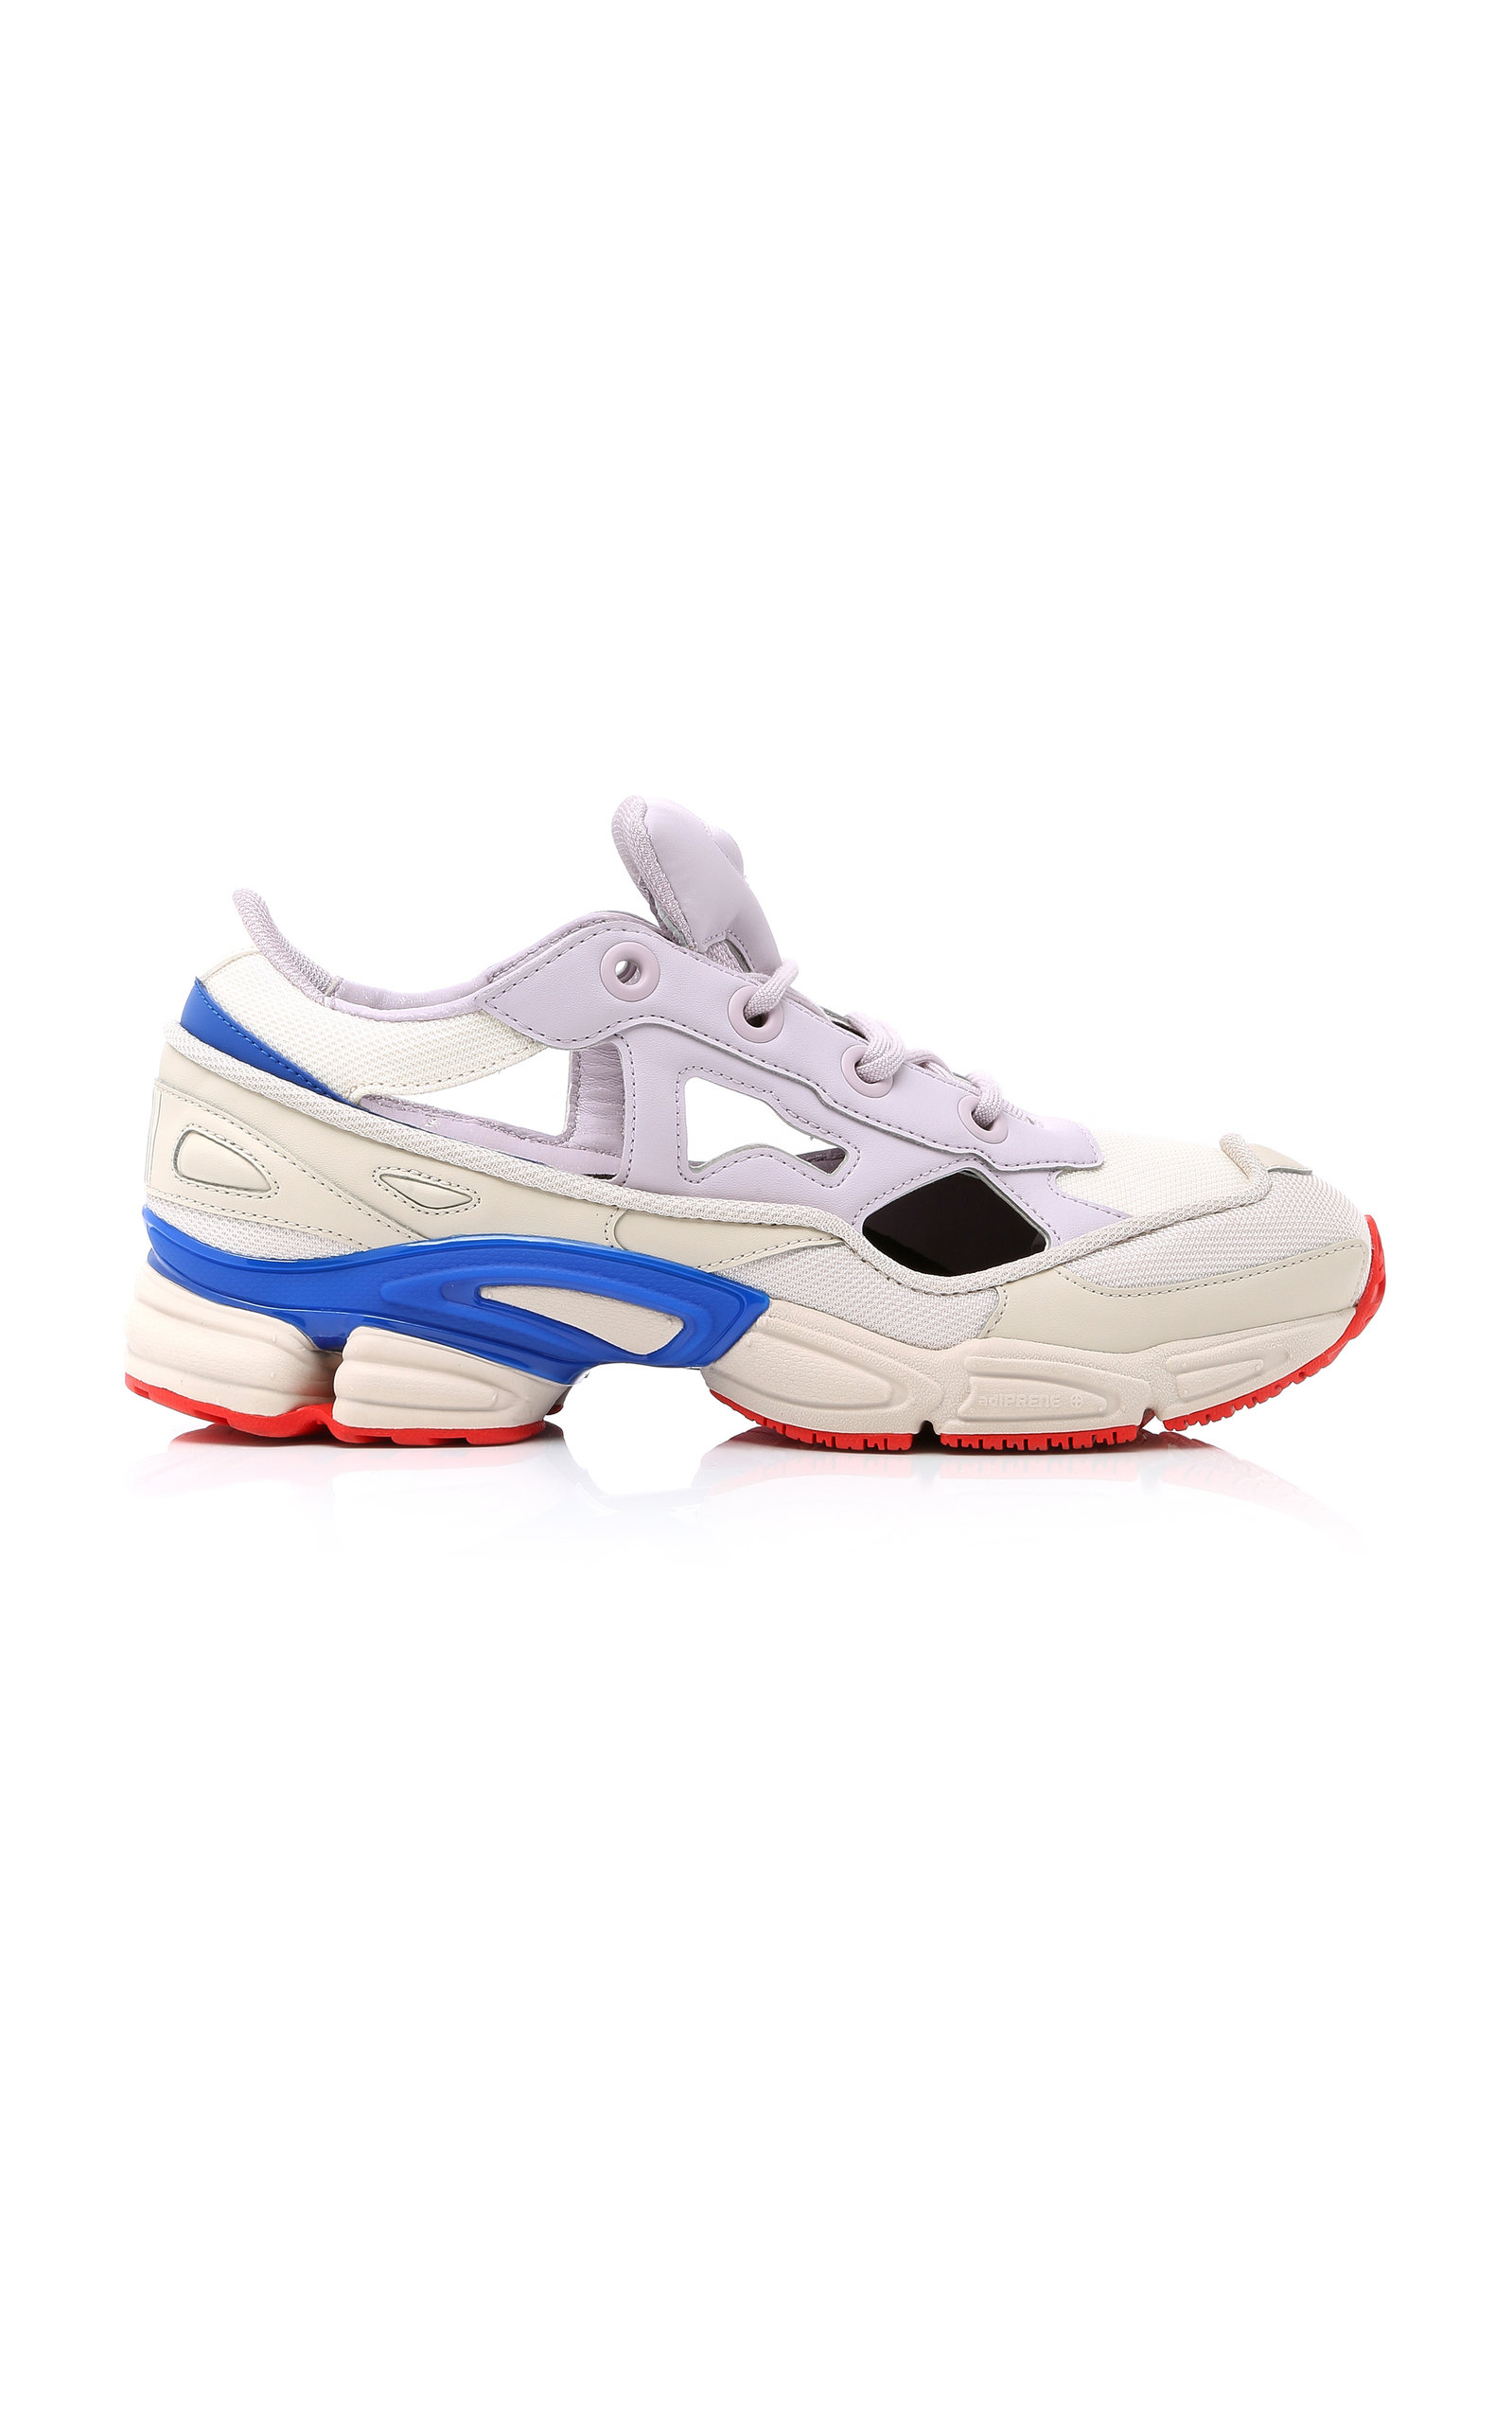 81d9258d6a9d45 adidas by Raf SimonsRS Replicant Ozweego Sneakers. CLOSE. Loading